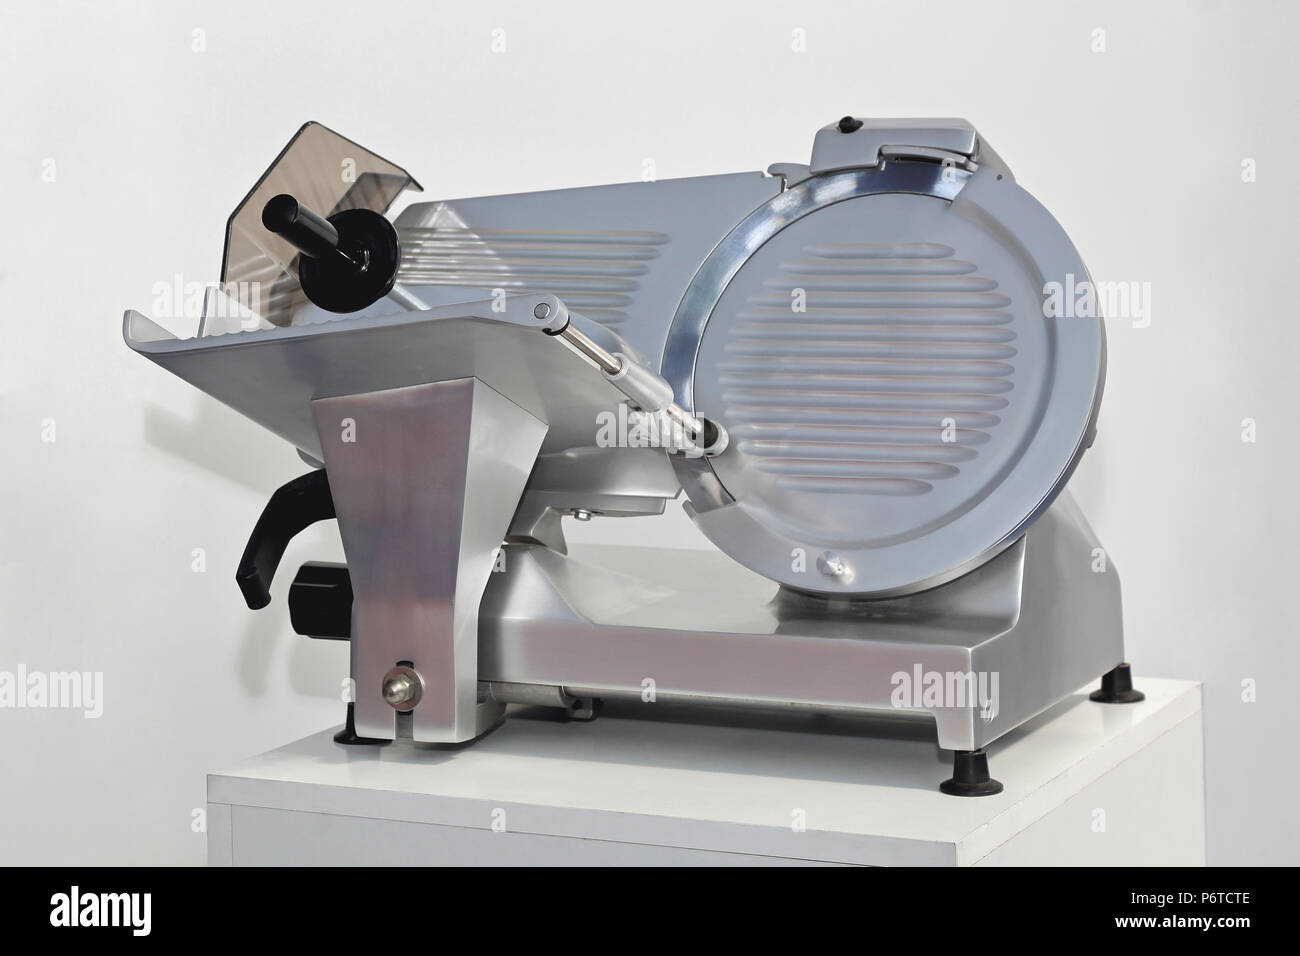 Meat Slicer Stock Photos Amp Meat Slicer Stock Images Alamy